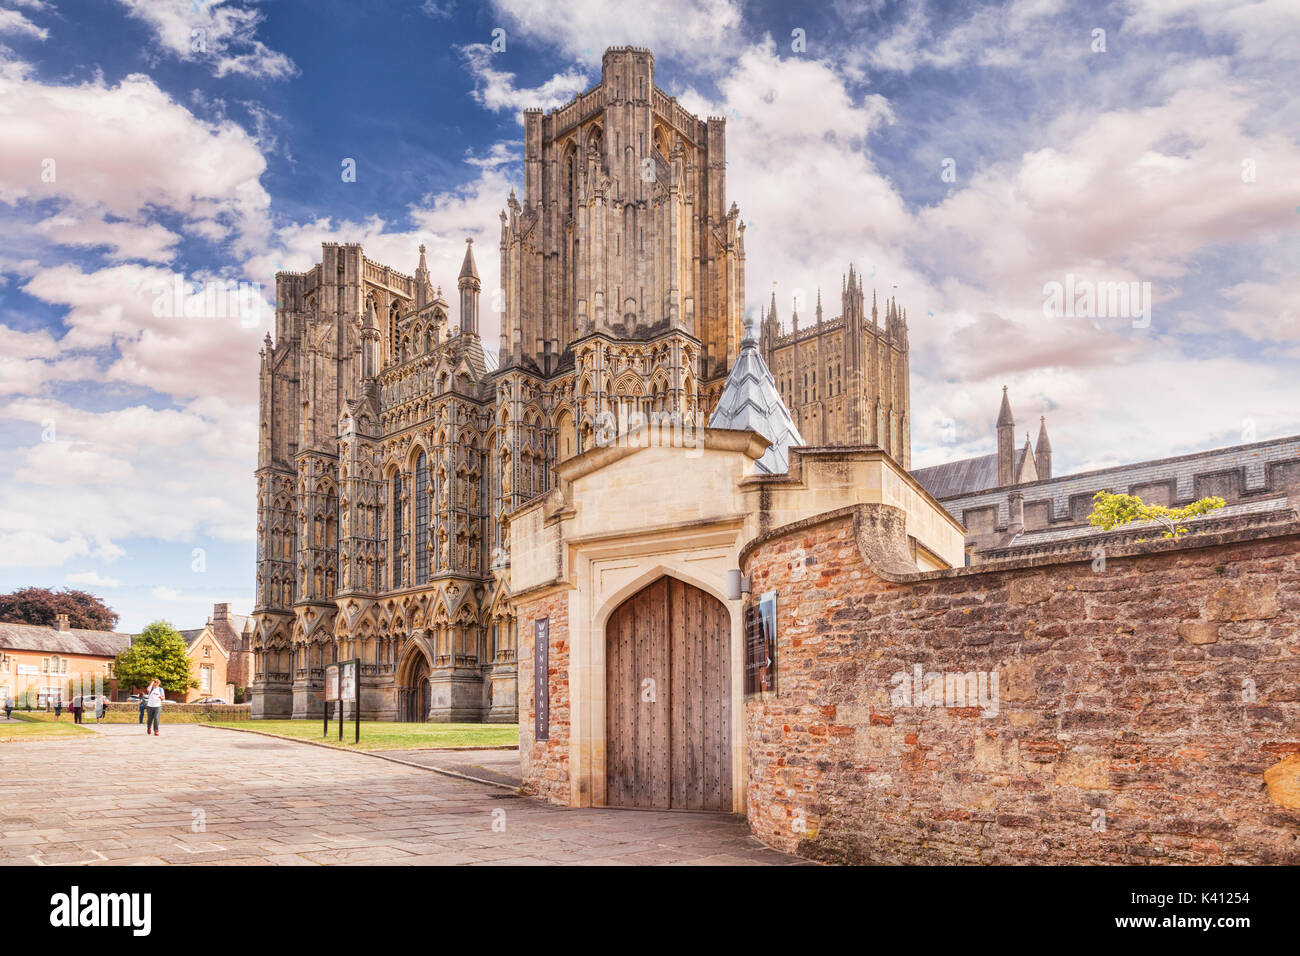 9 July 2017: Wells Somerset, England, UK - The Cathedral, one of England's finest and the seat of the Bishop of Bath and Wells. - Stock Image